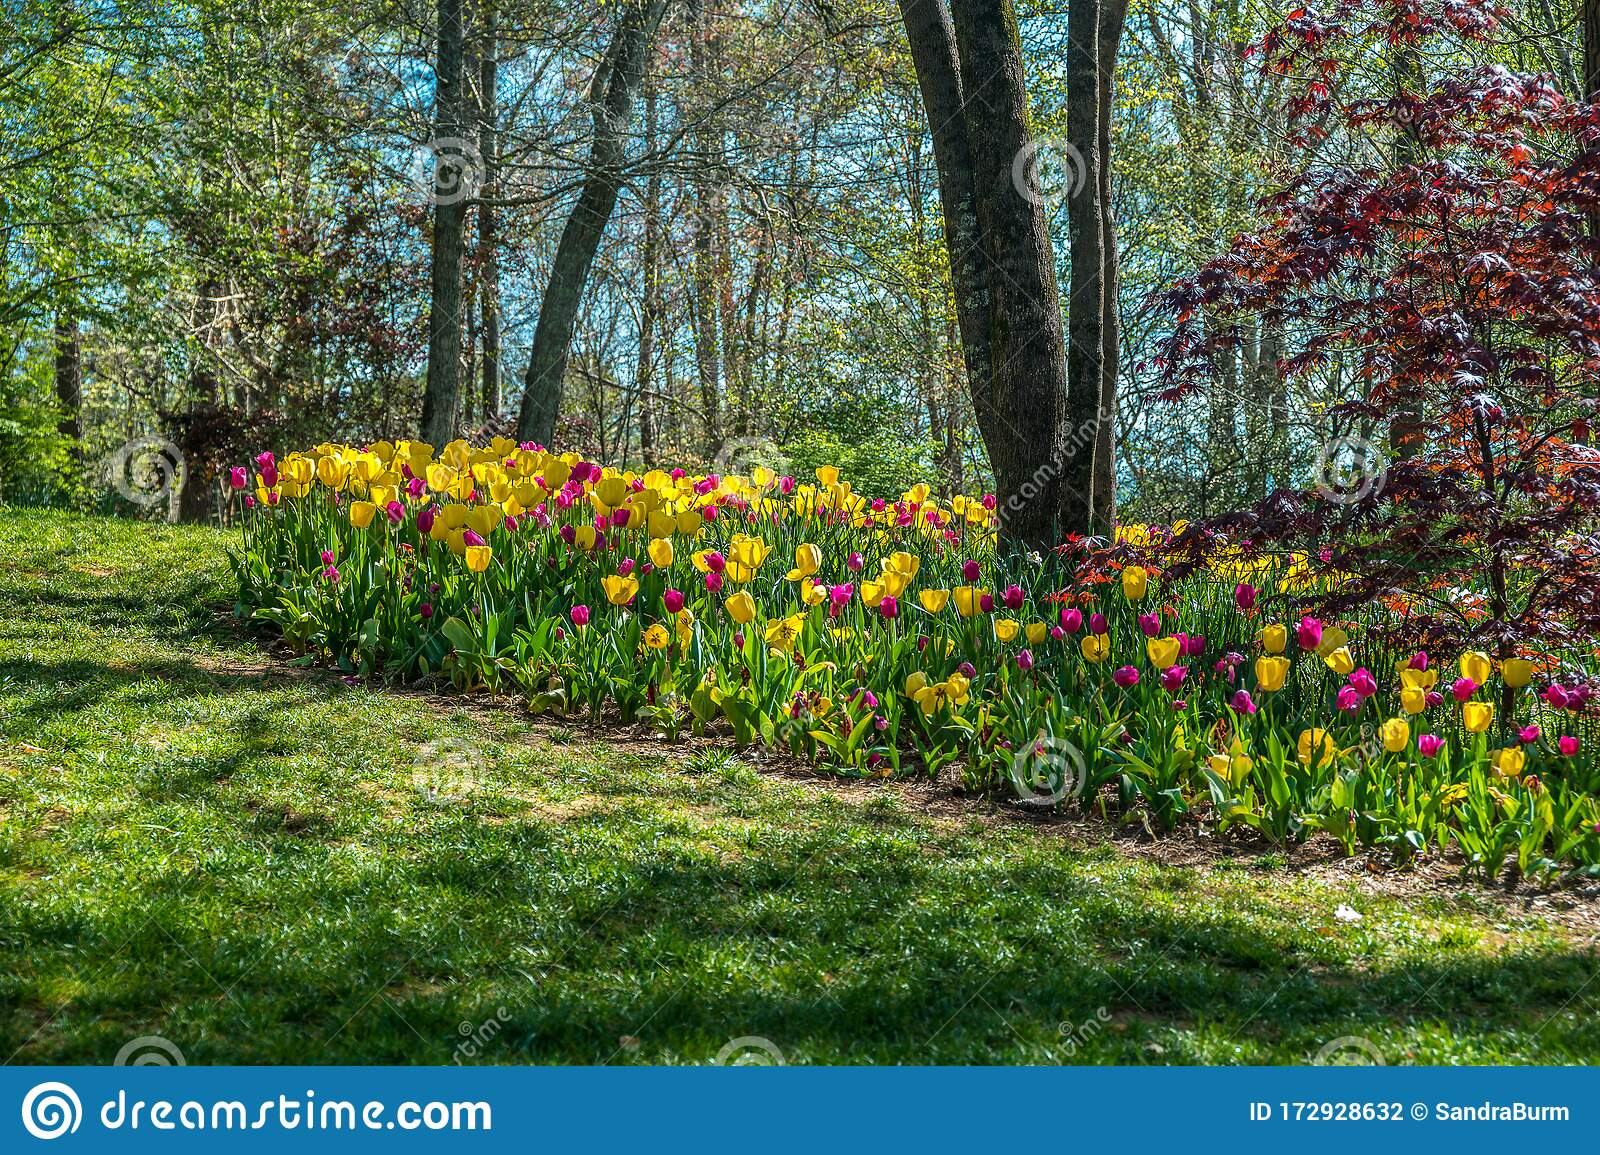 Tulips In A Flower Bed Around A Tree Stock Photo Image Of Growth Botanical 172928632